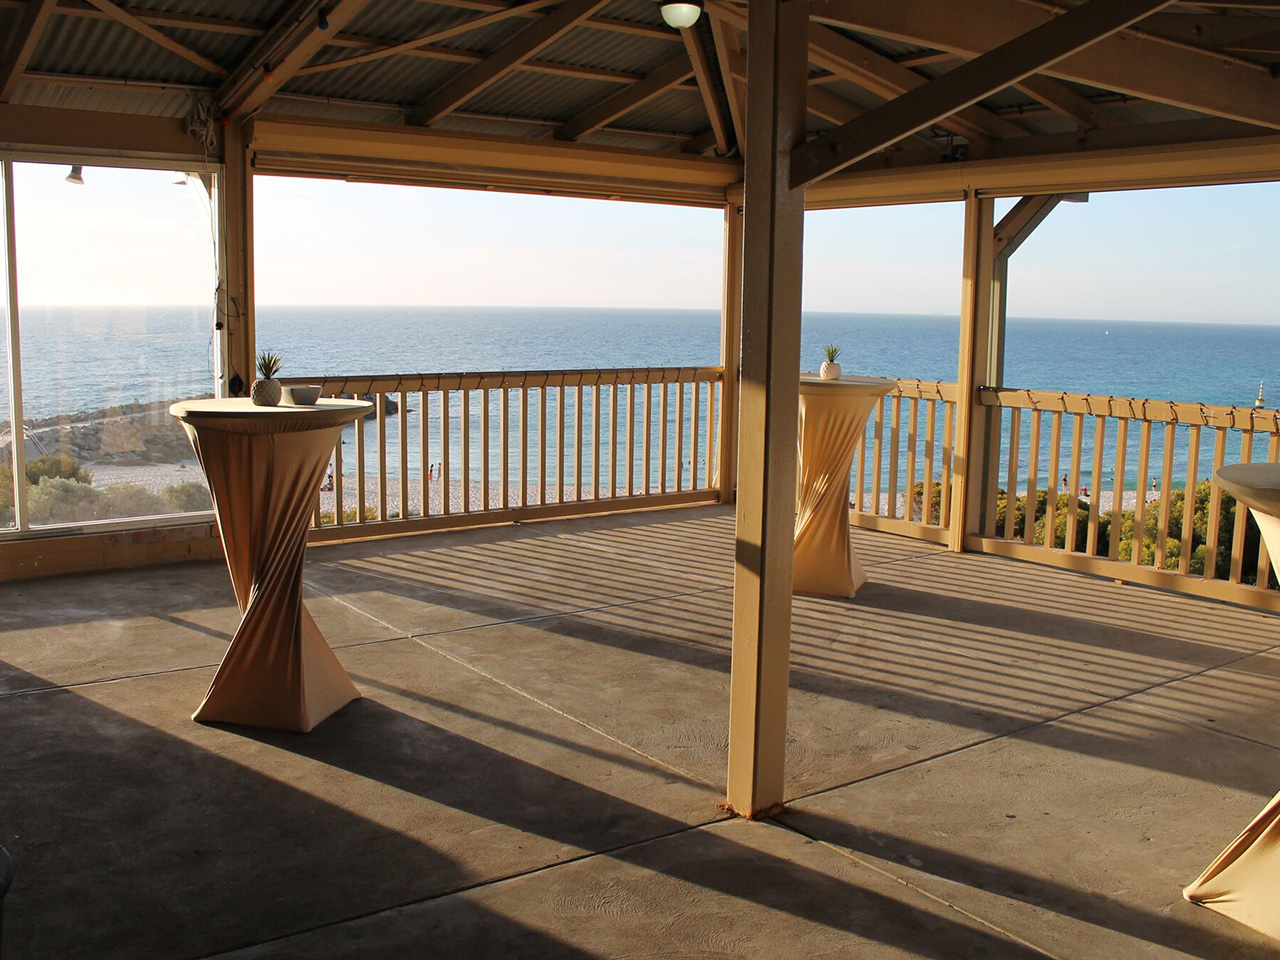 Balcony With Cocktail Tables And Ocean View